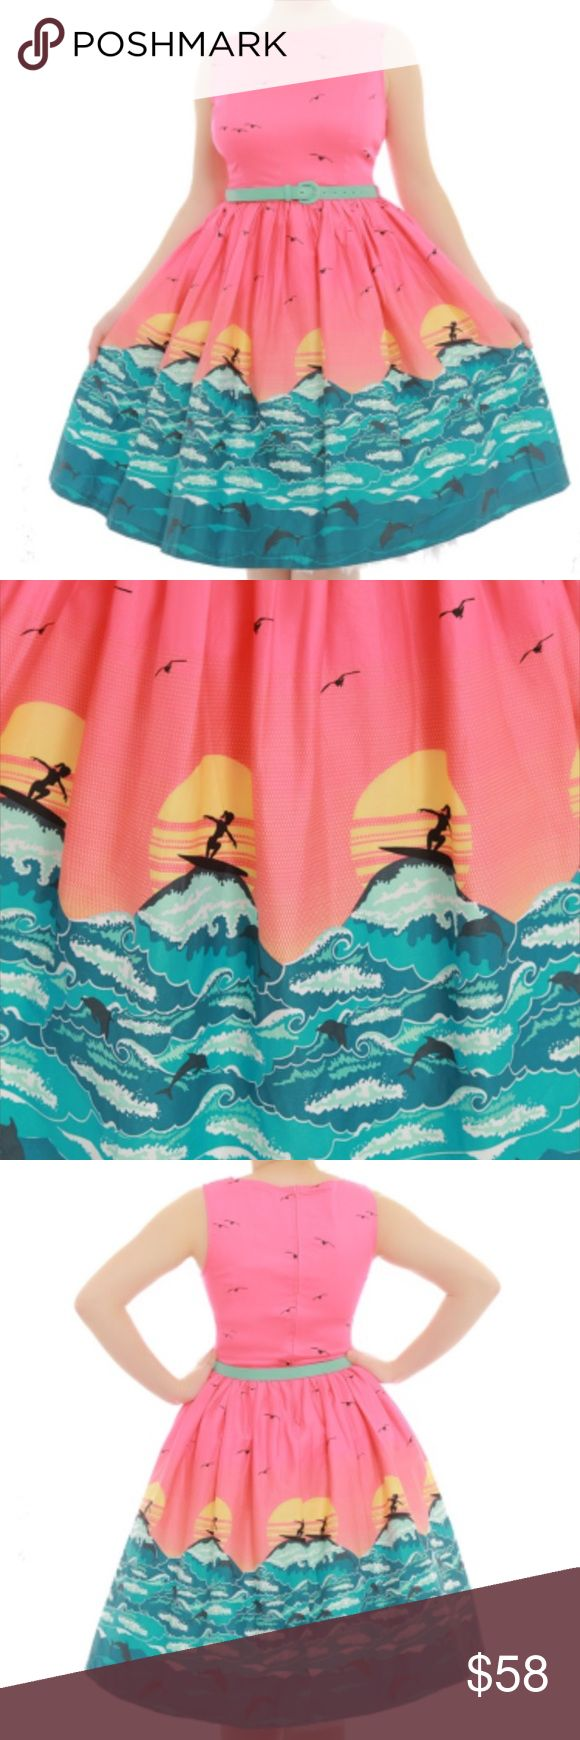 Lindy Bop Audrey dress in Pink Surfer Brand new with tags! Never worn! Wonderful sturdy cotton dress, provides some stretch. Belt included. UK 14/ US 10. Size chart comes from Lindy Bop website. ModCloth Dresses Midi